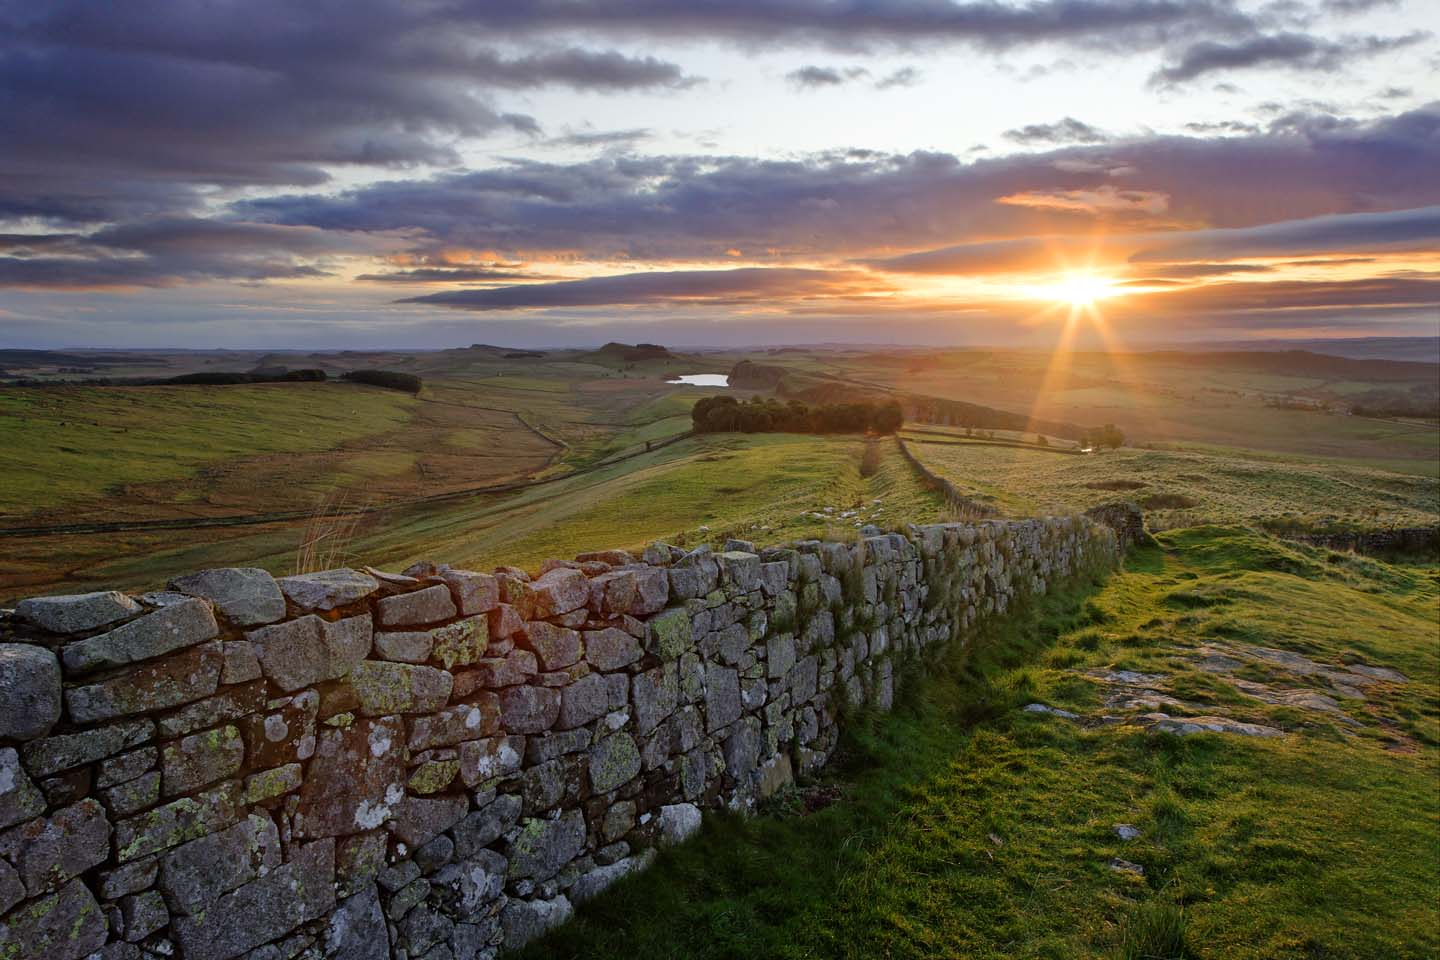 The beautiful Hadrian's Wall